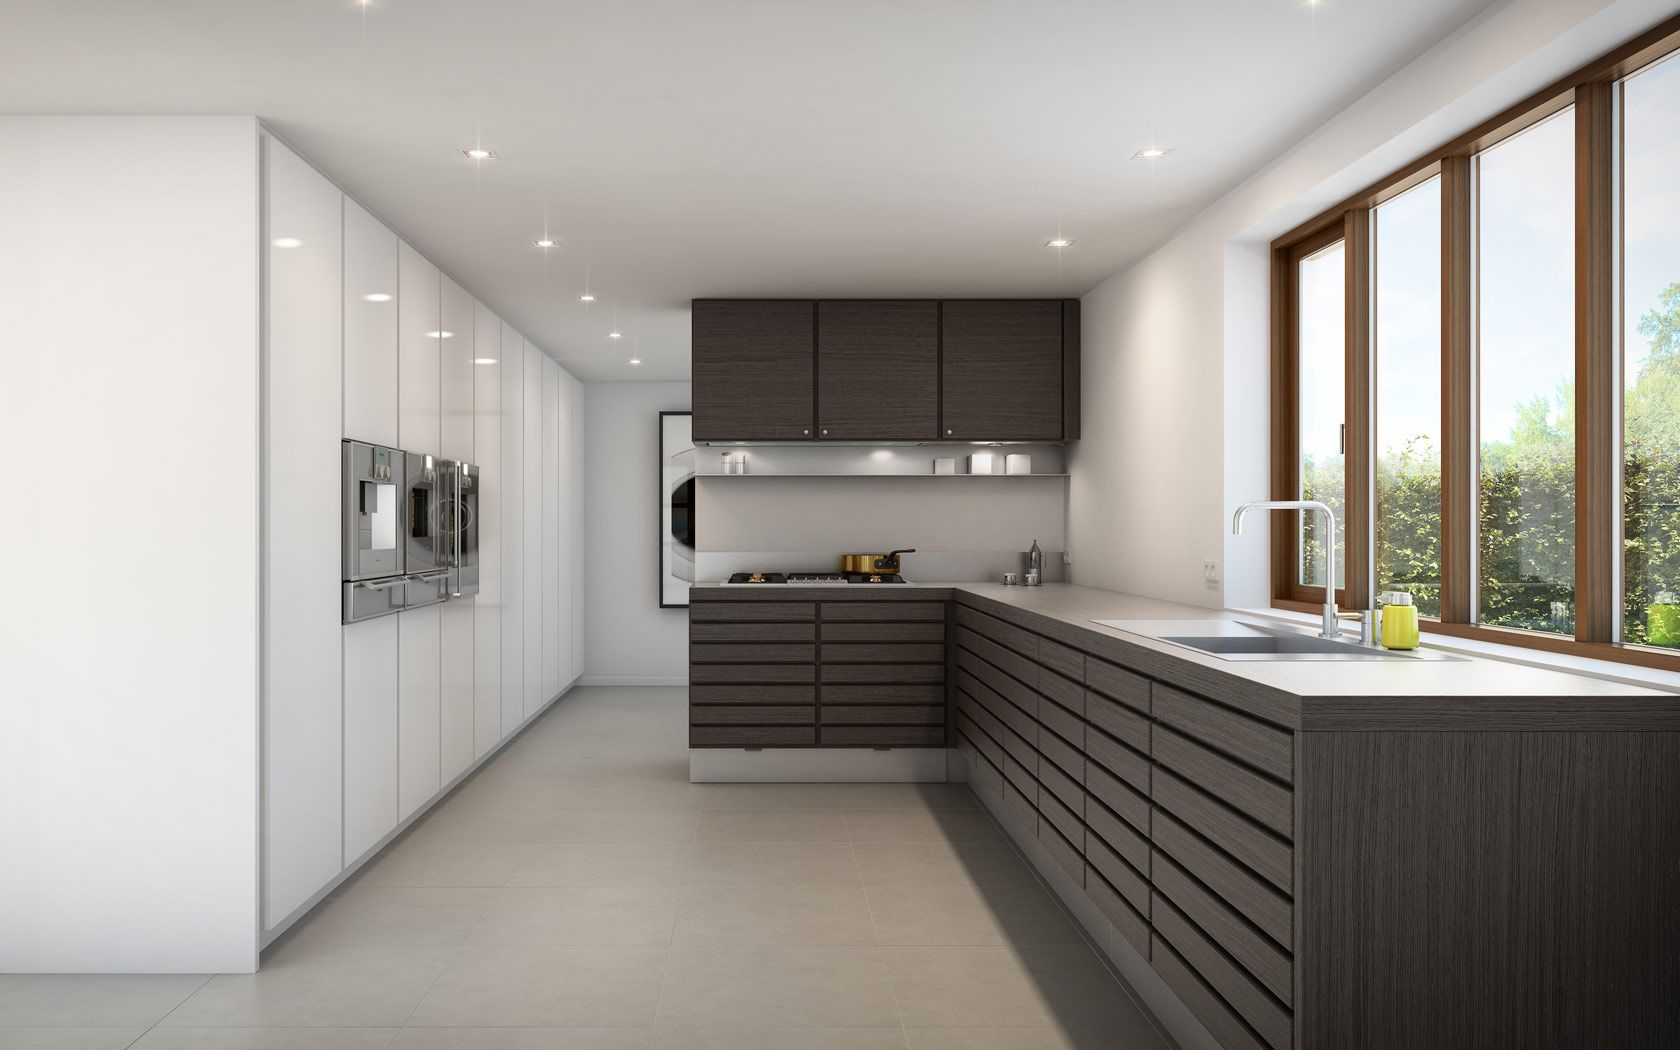 Form 6 Full Wall Cabinets In White With Built In Ovens